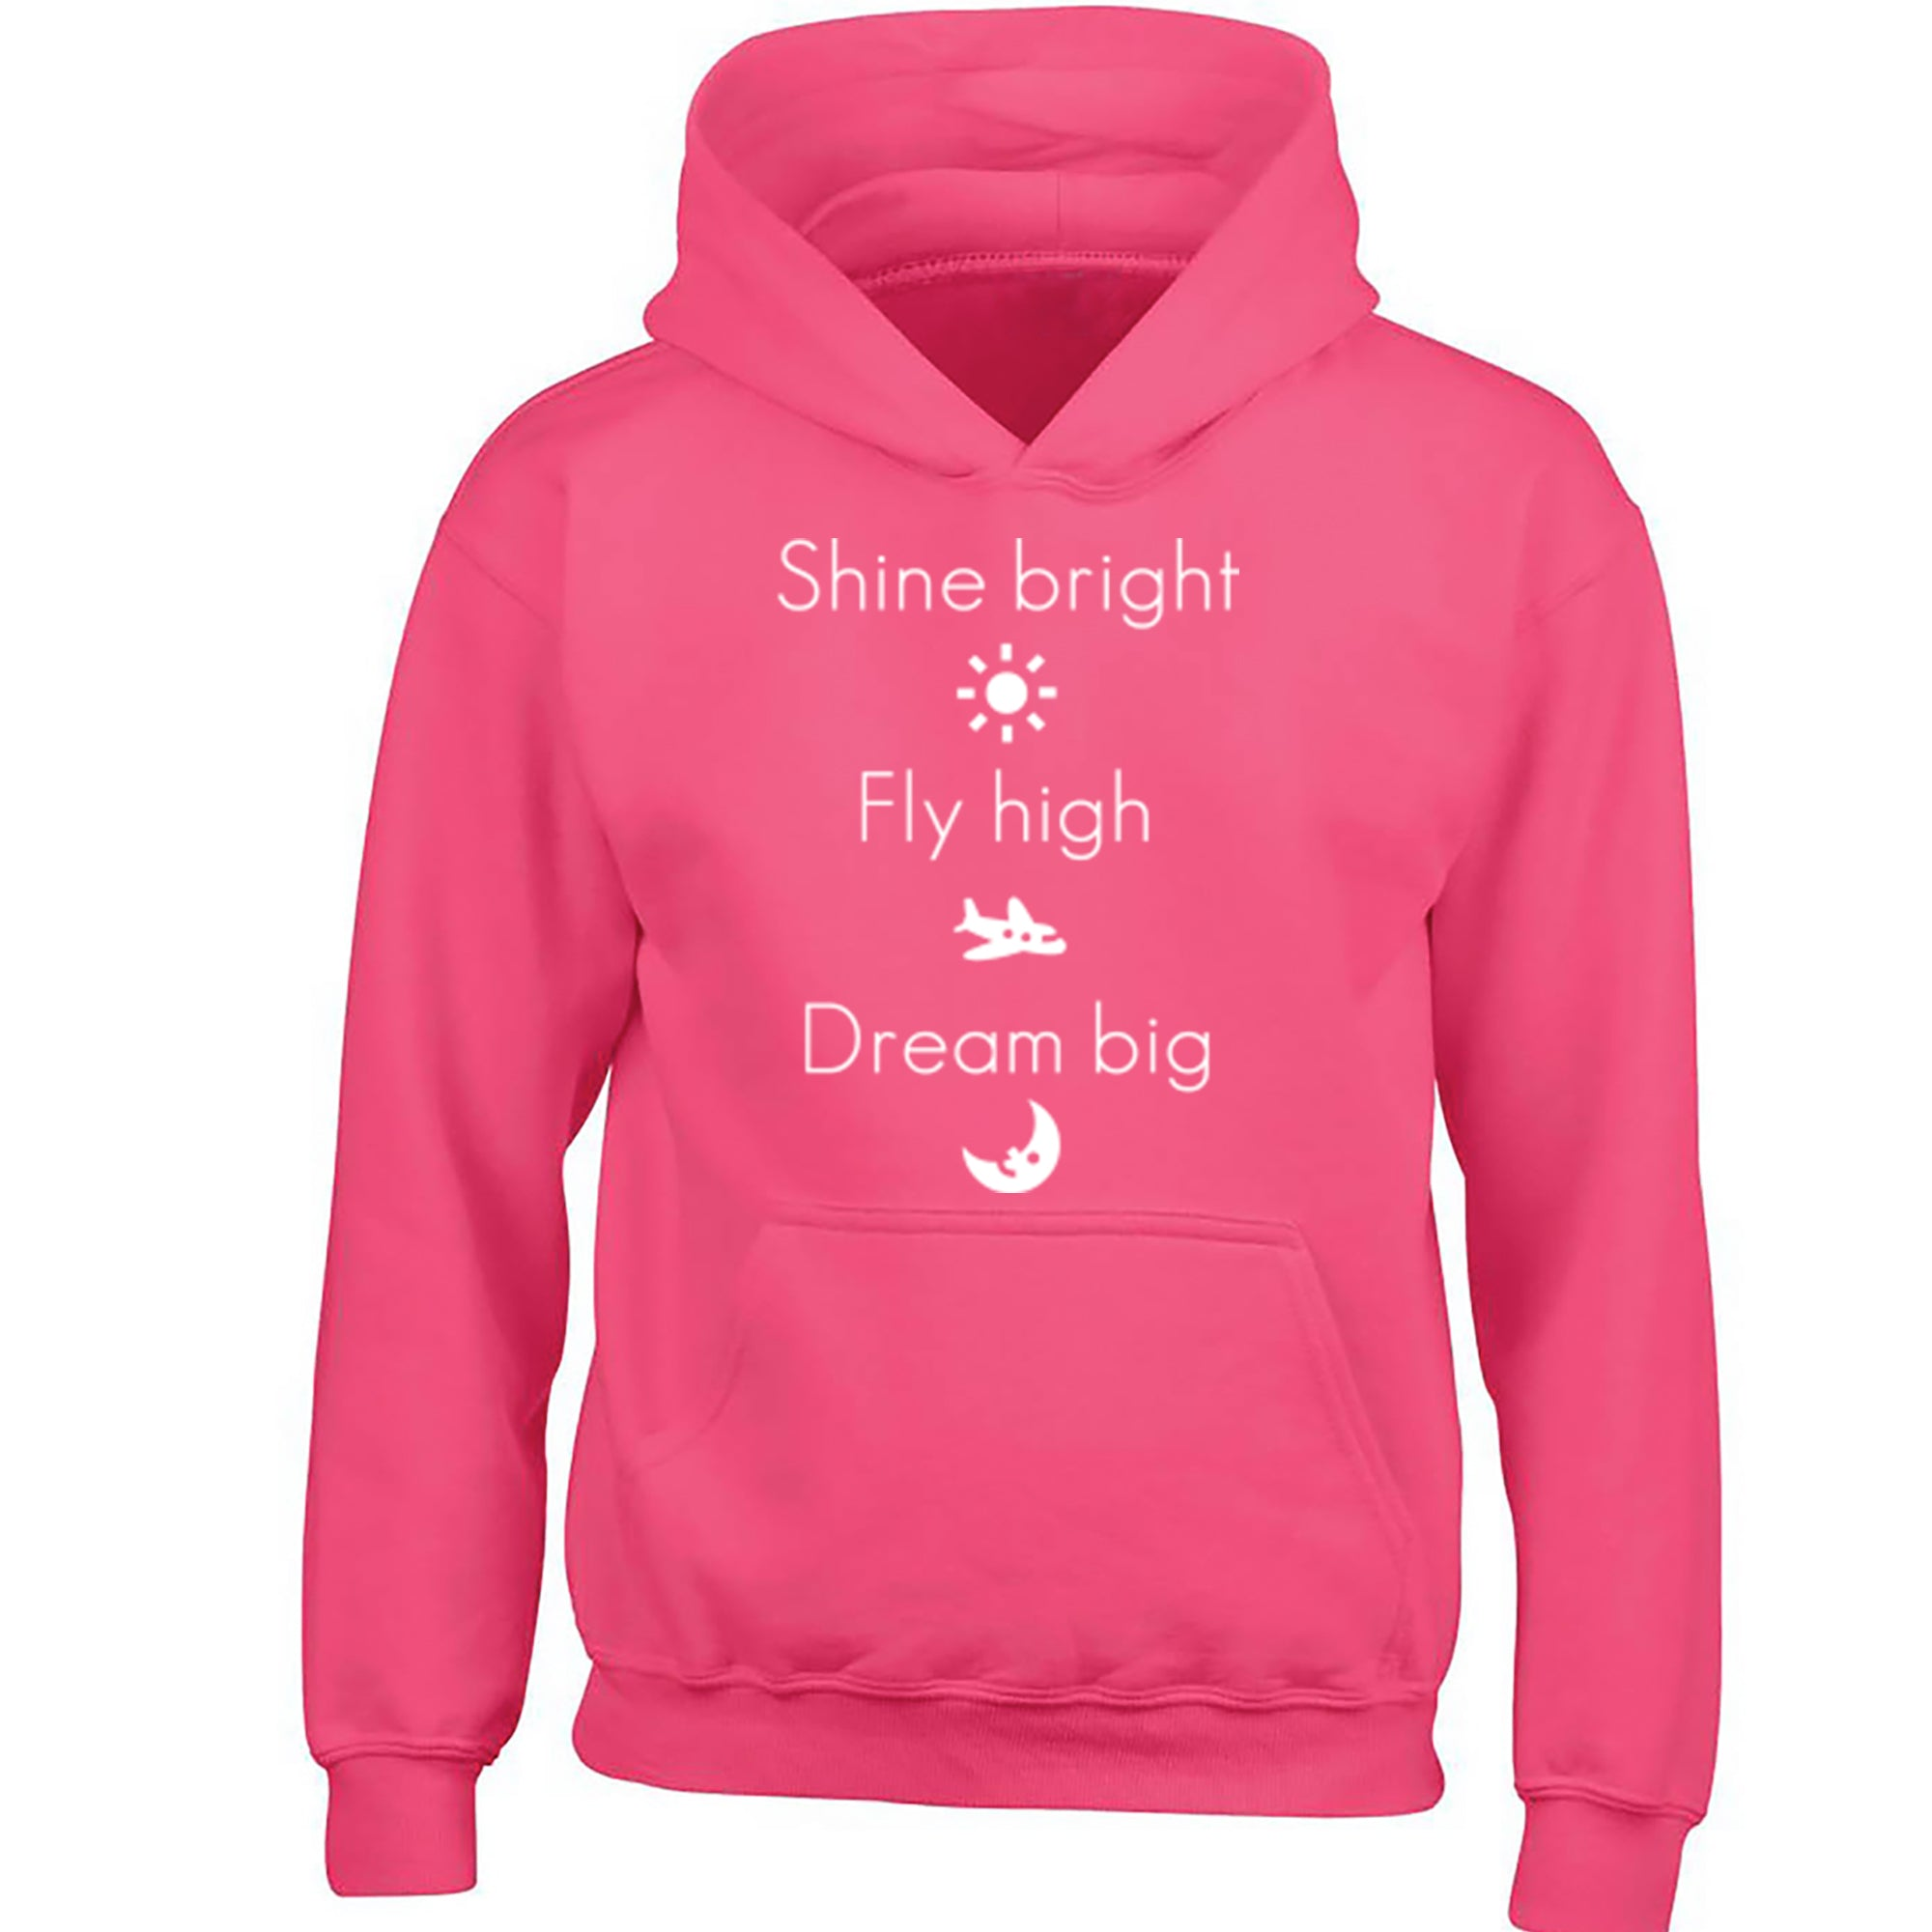 Shine Bright, Fly High, Dream Big Childrens Ages 3/4-12/14 Unisex Hoodie S0502 - Illustrated Identity Ltd.